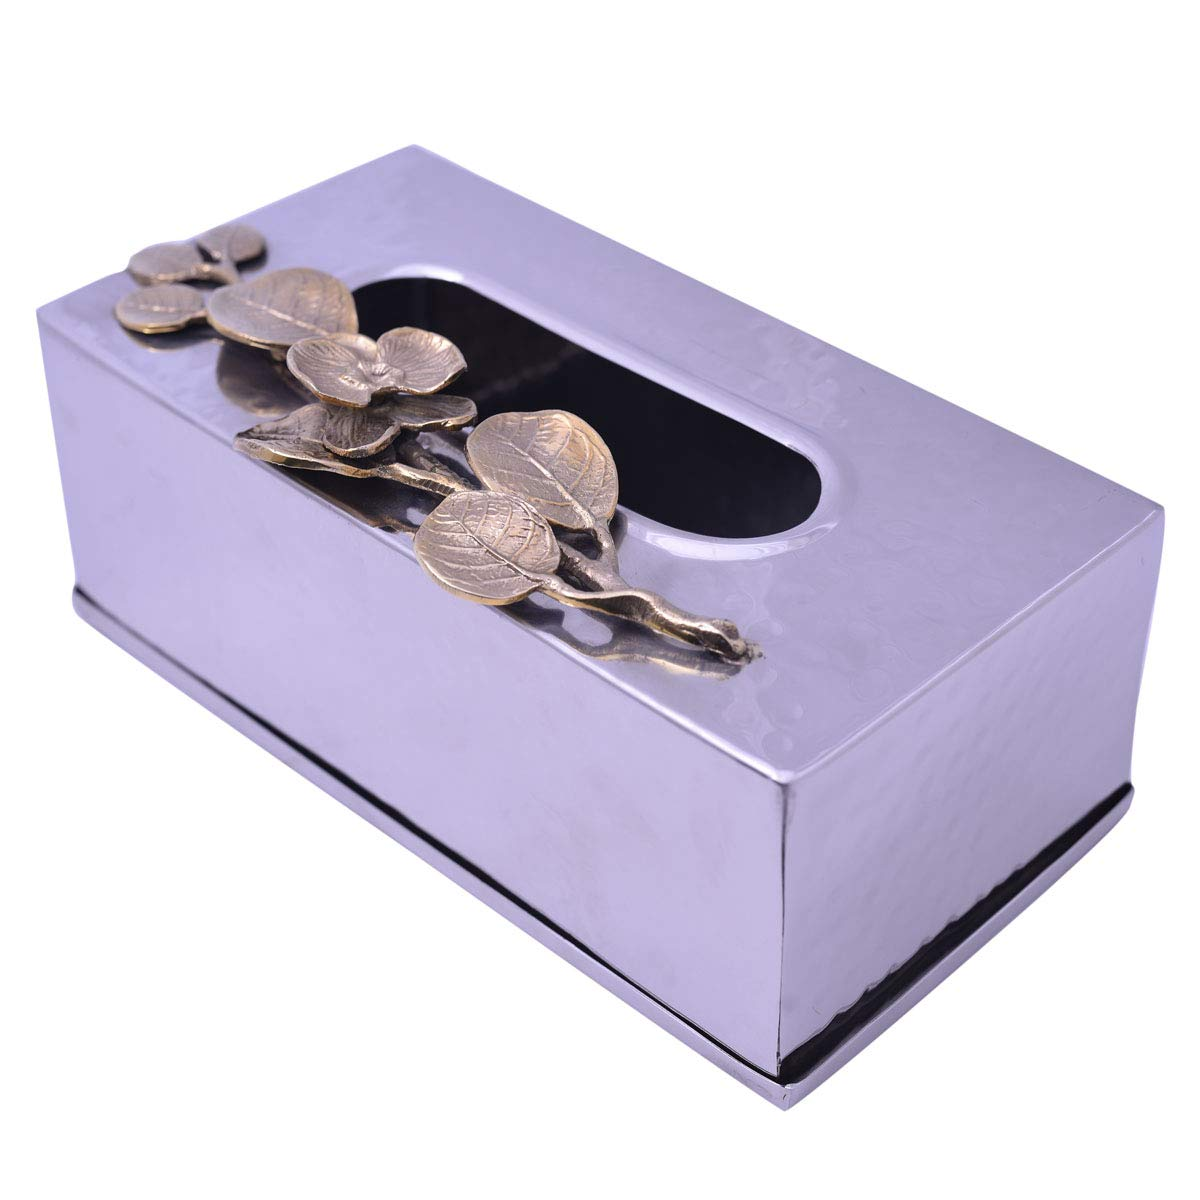 Decozen Hammered Rectangular Tissue Box Cover with Orchid Accent Shiny Surface Table Decoration Kitchen and Bath Accessory Smooth End Rectangular Opening Box Napkin Holder 10.5 x 7.5 x 5.5 Inches